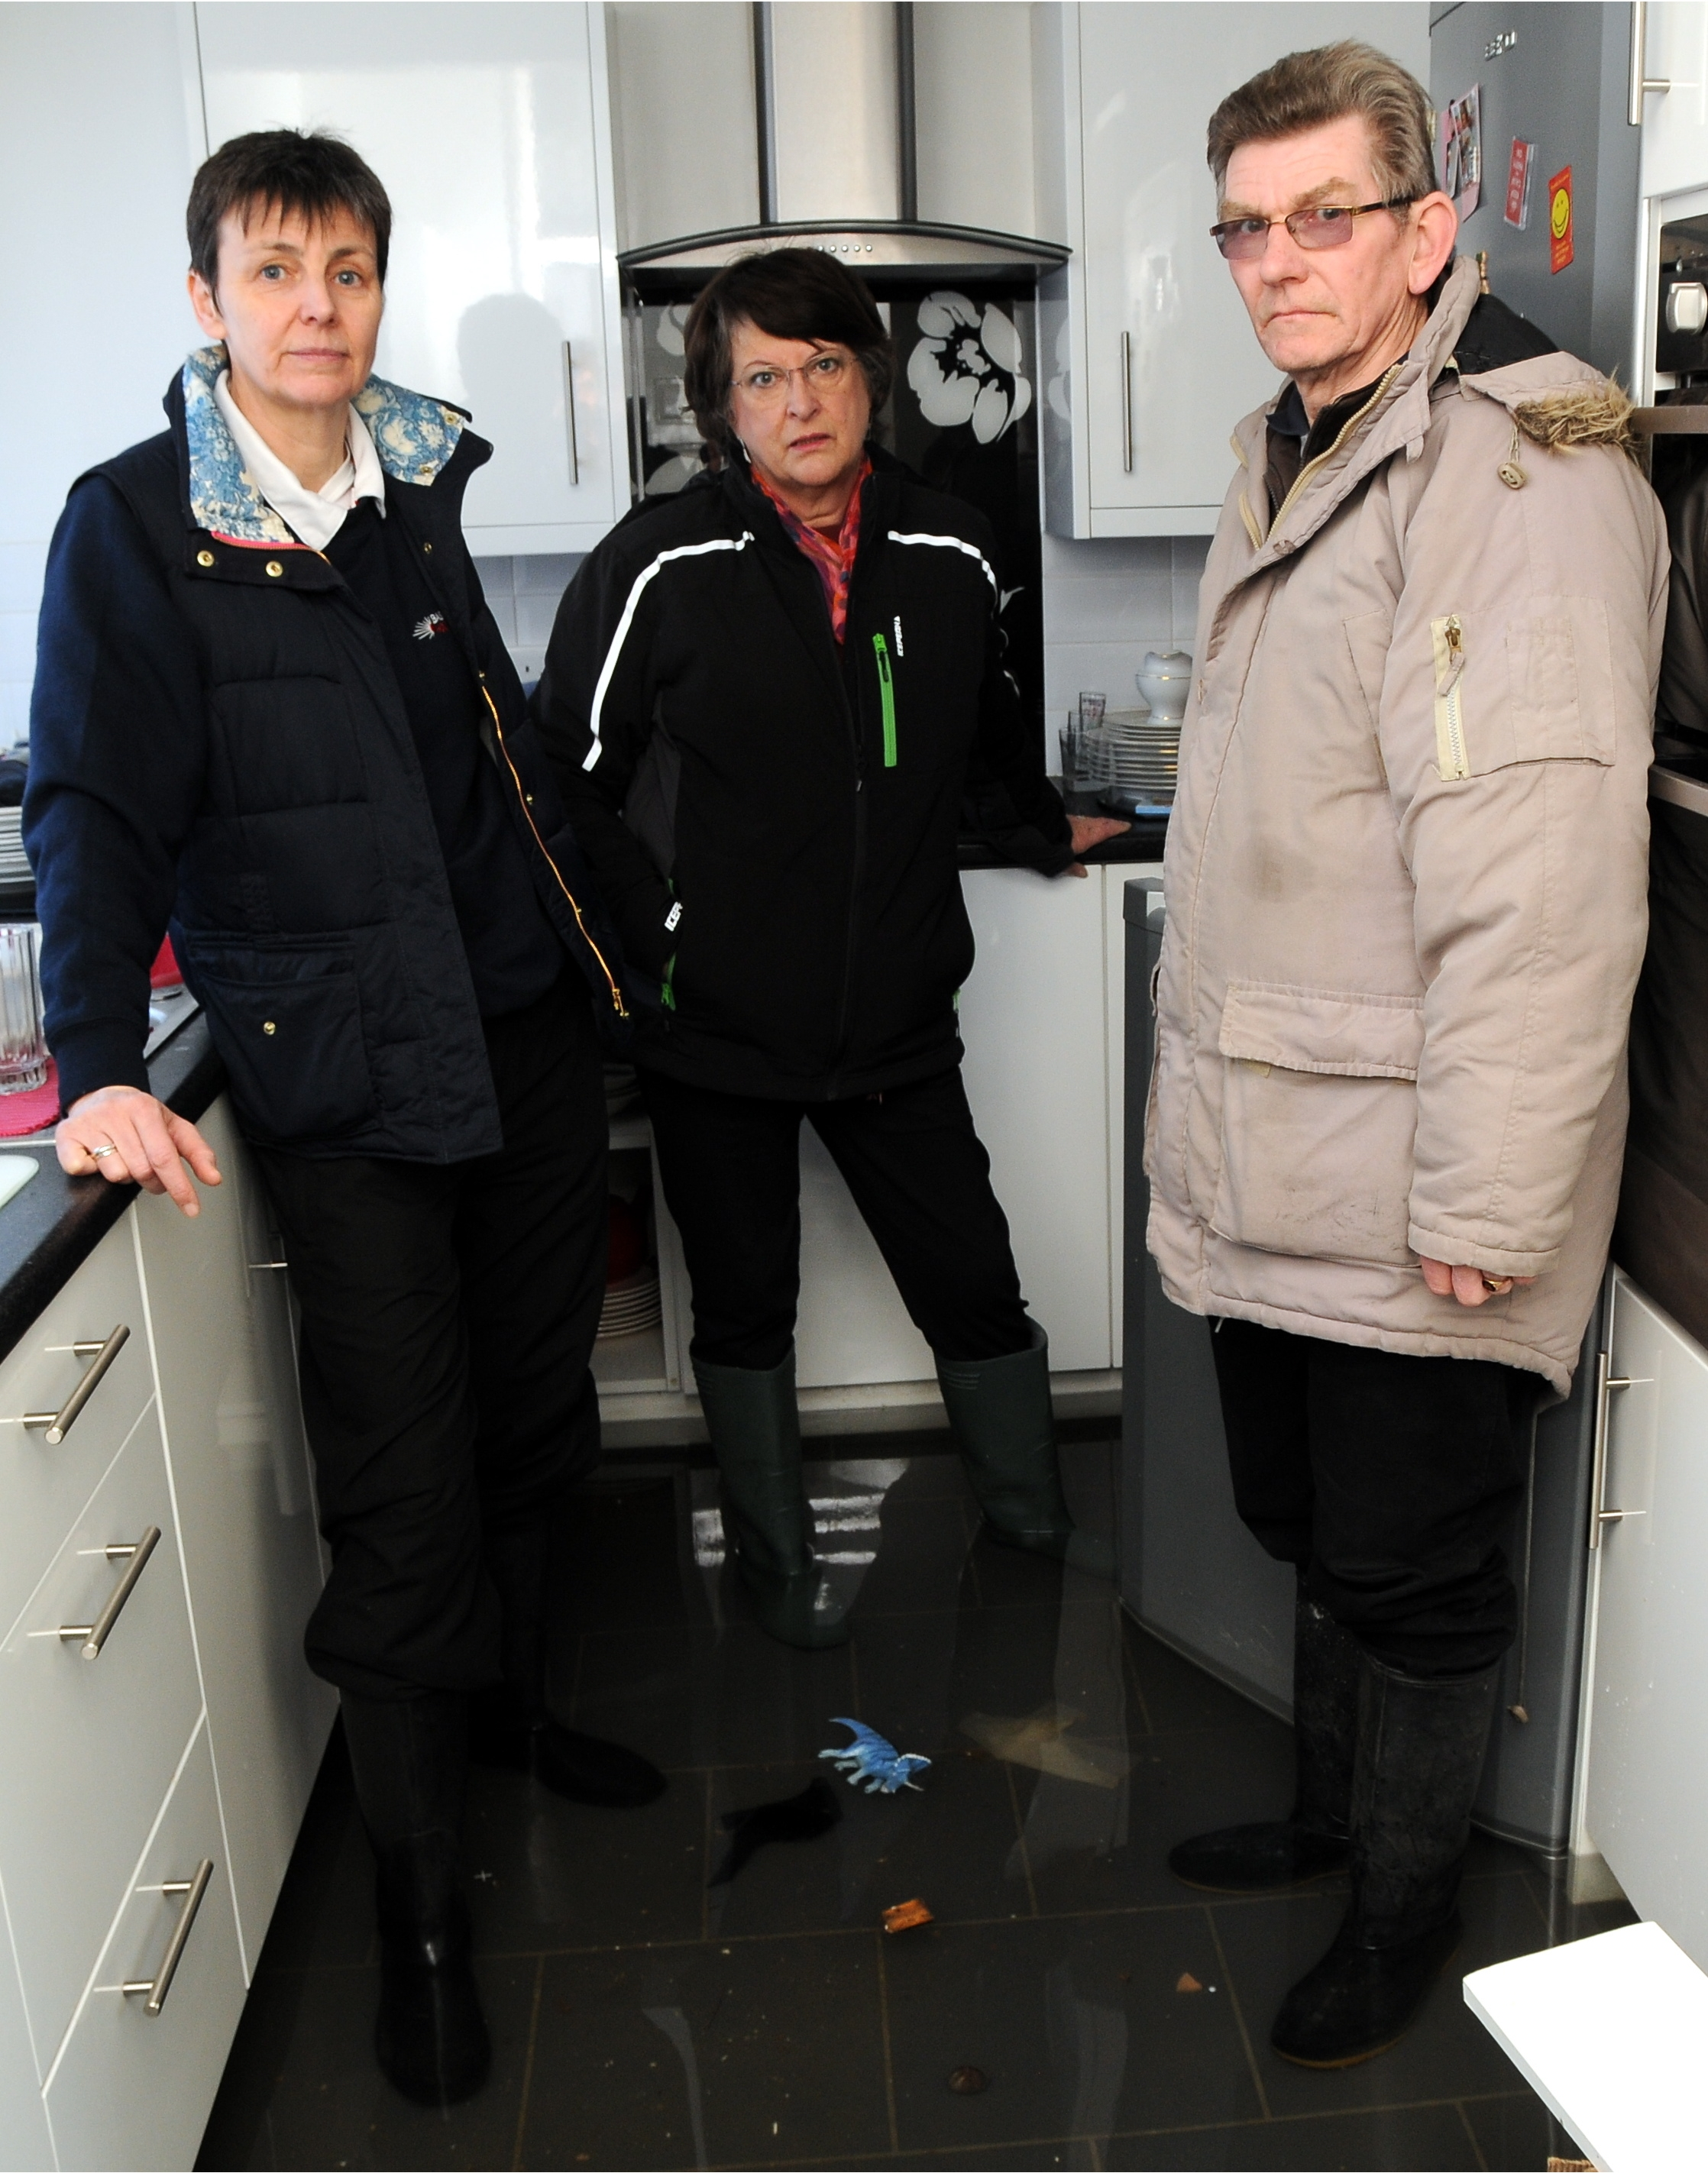 Liberal Democrat Janice Spalding, left, and South East Lib Dem MEP Catherine Bearder meet Buckskin flooding victim Charles Butt